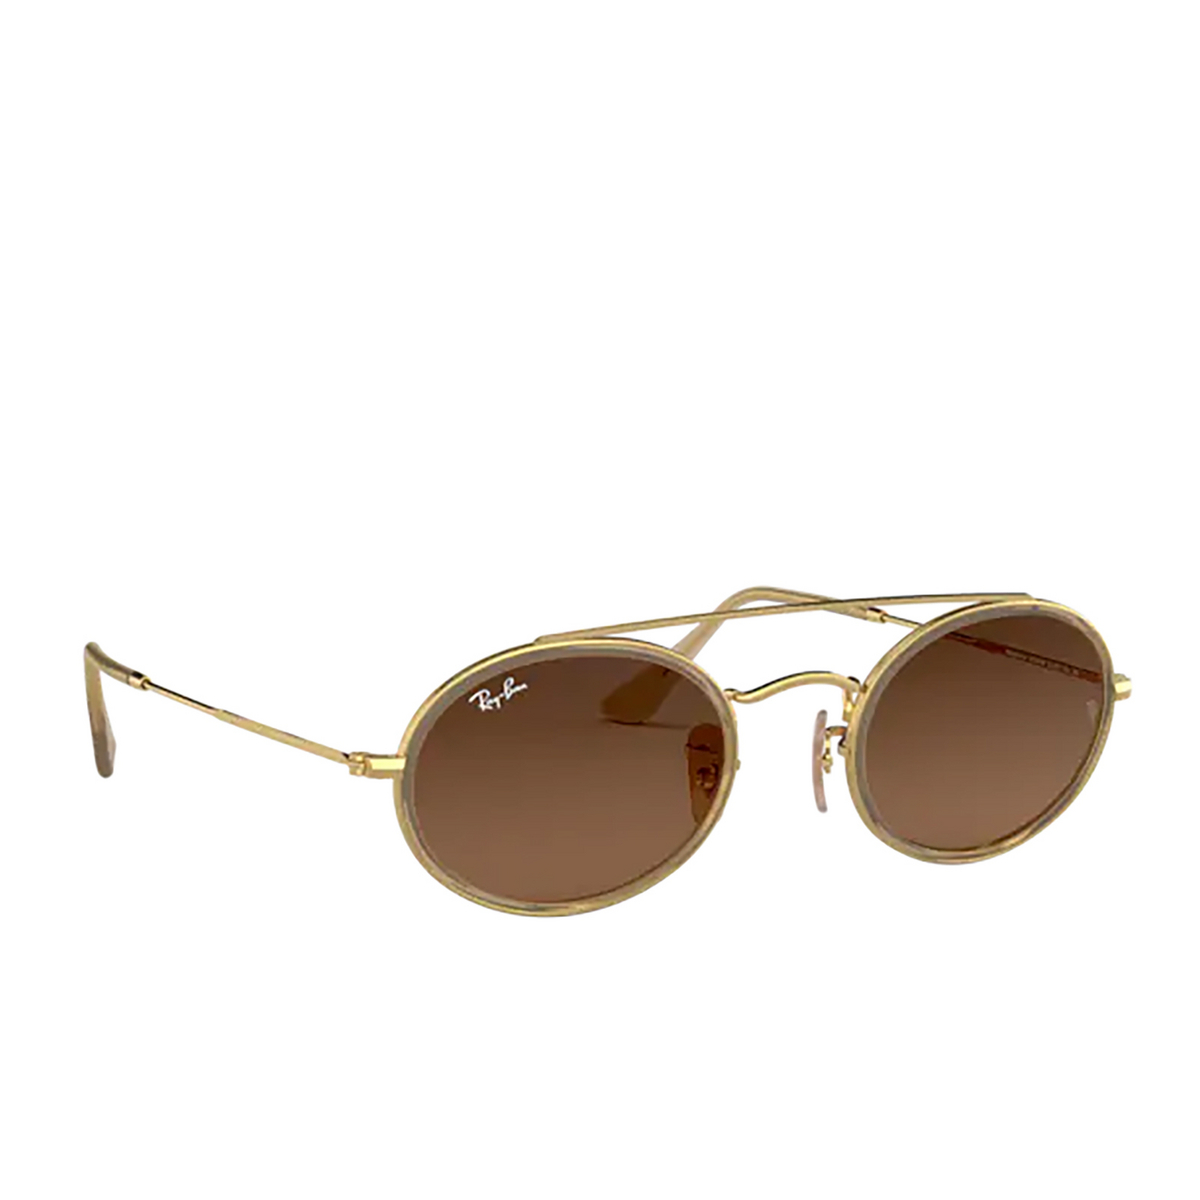 Ray-Ban® Oval Sunglasses: RB3847N color Arista 912443 - three-quarters view.